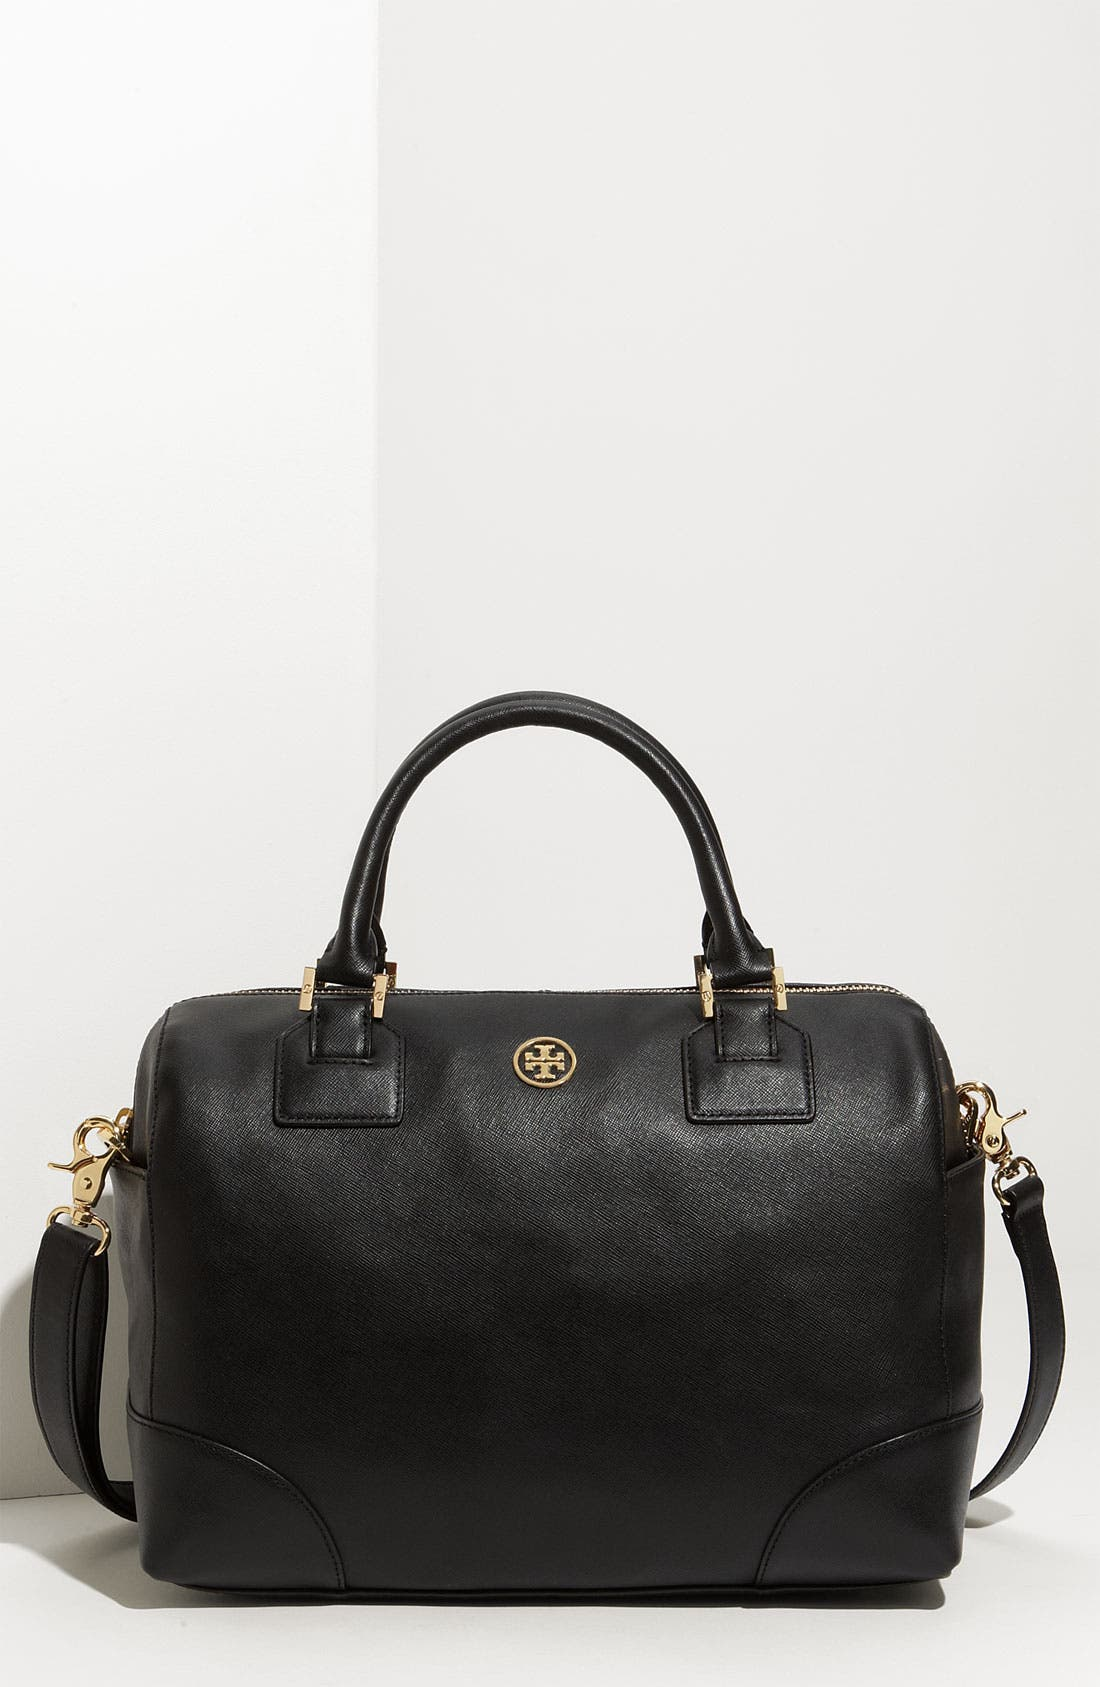 TORY BURCH 'Robinson' Satchel, Main, color, 001